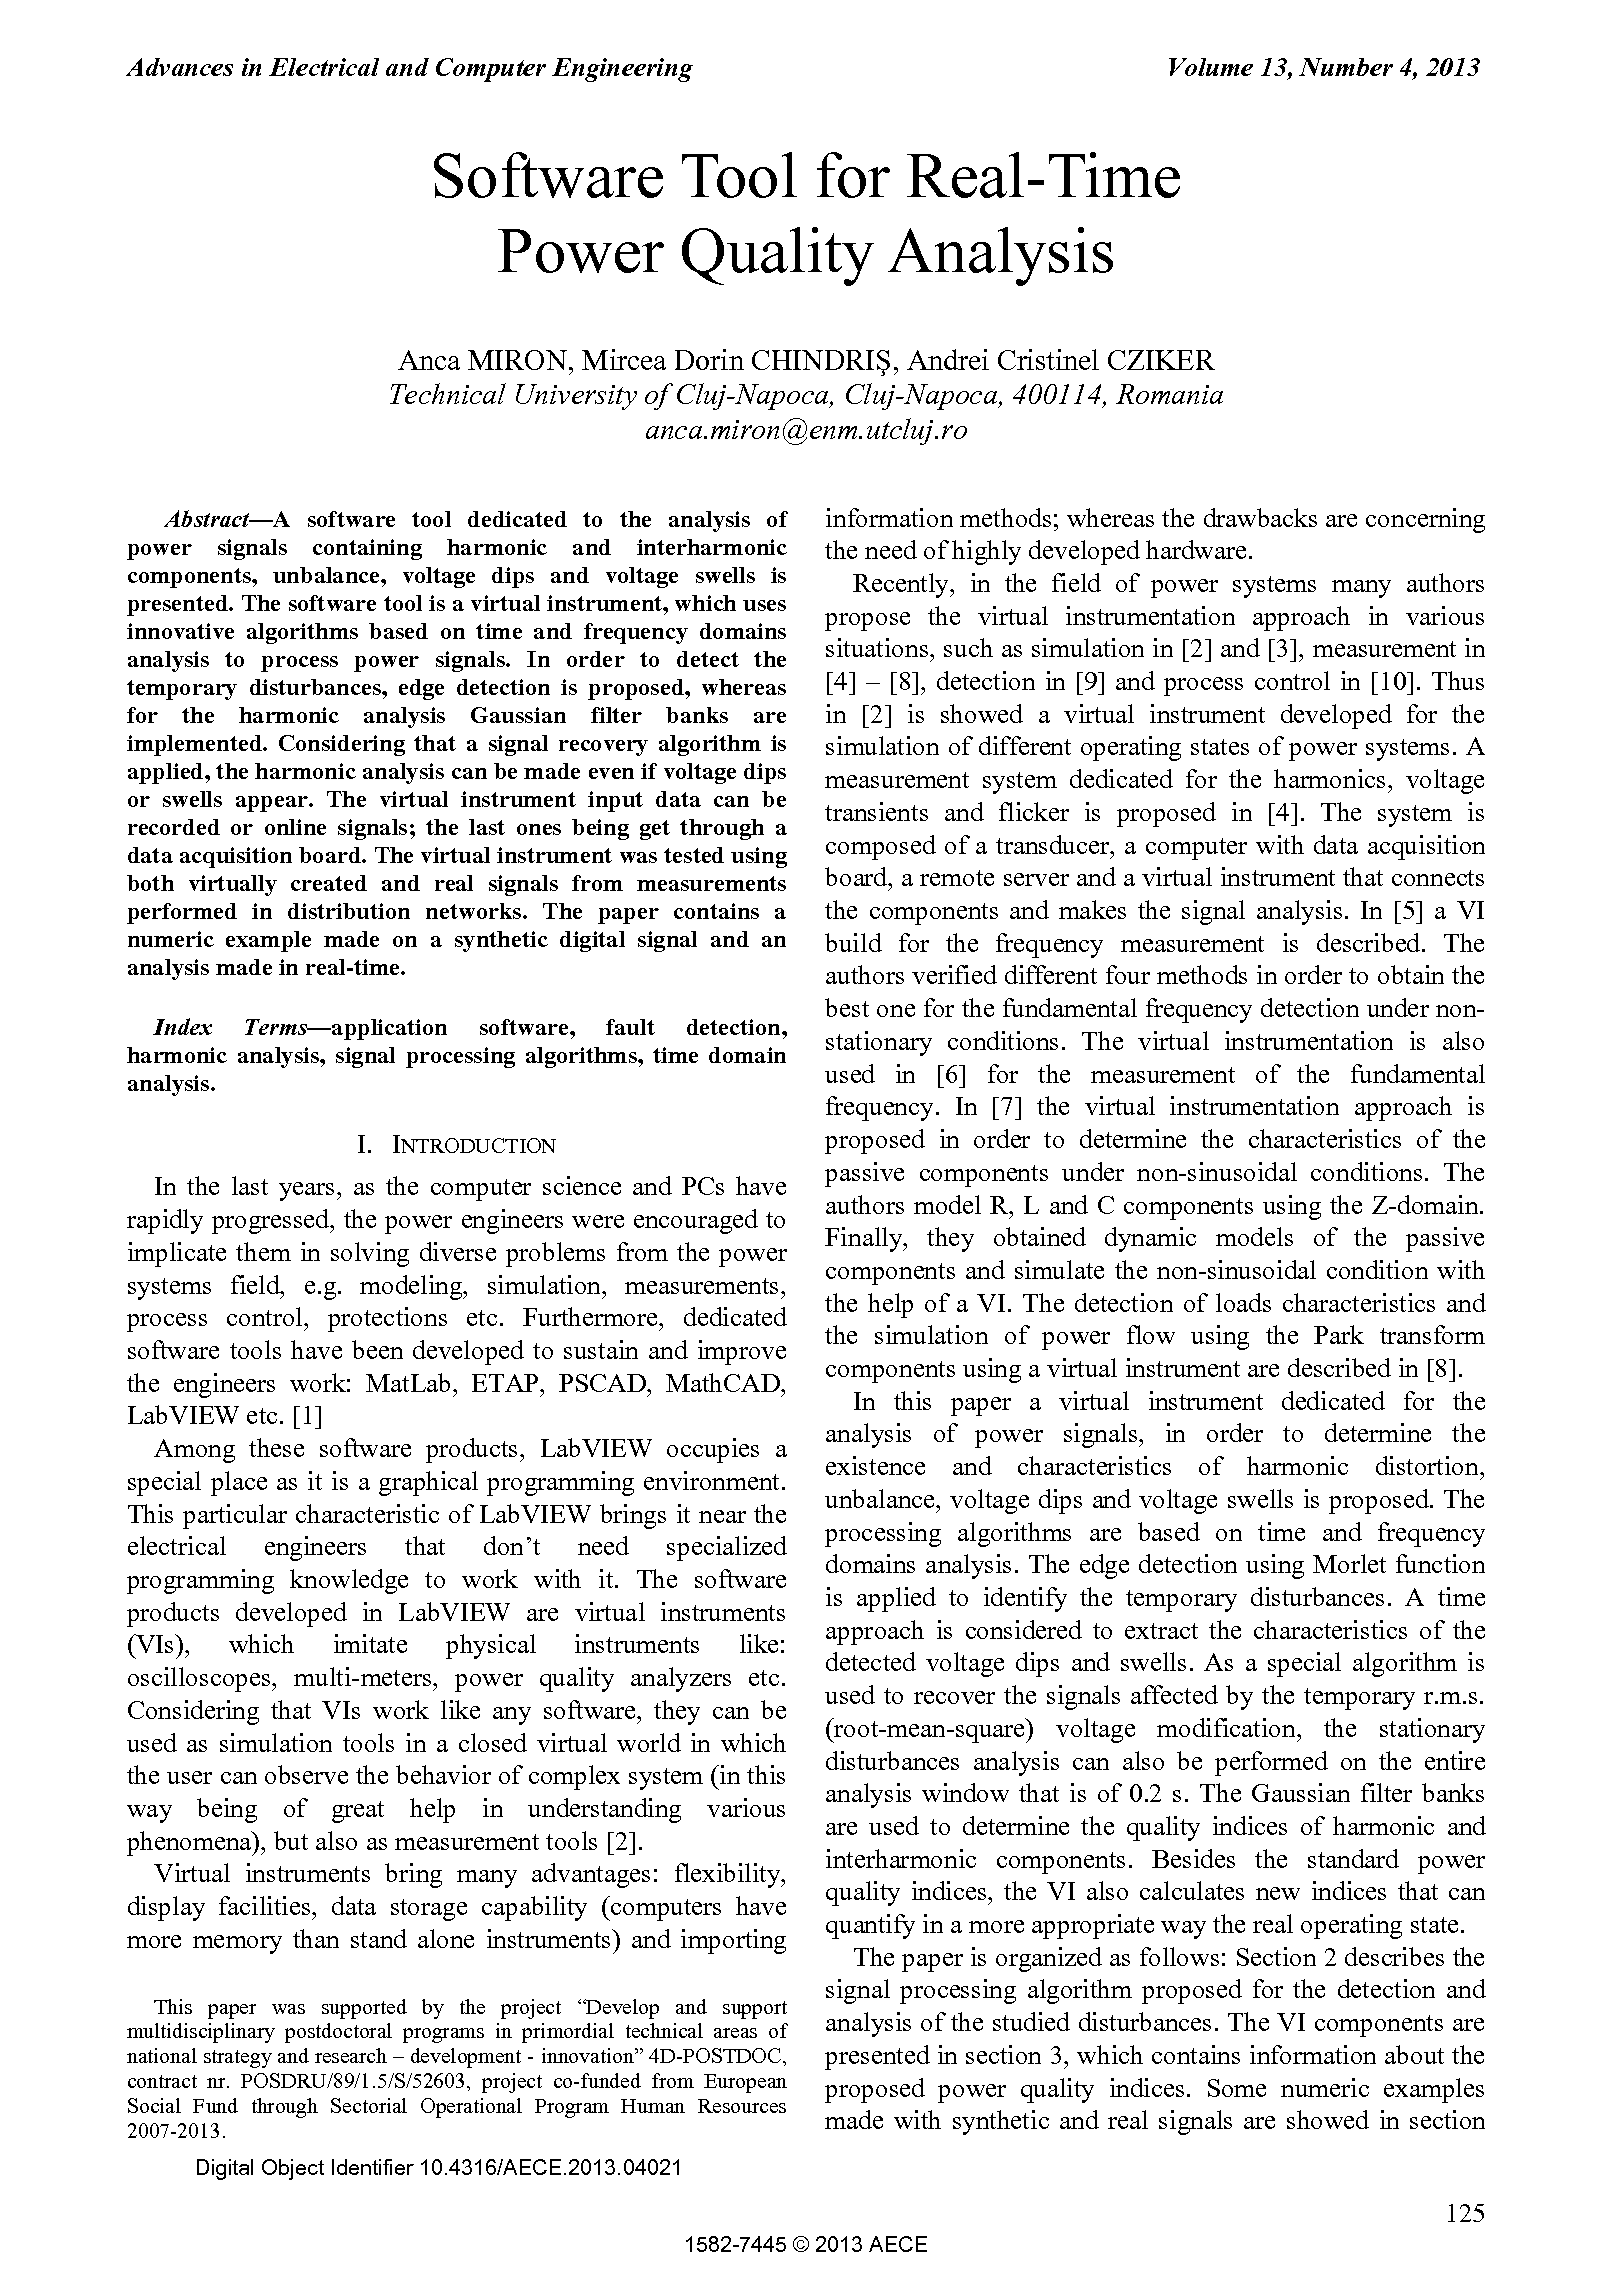 PDF Quickview for paper with DOI:10.4316/AECE.2013.04021